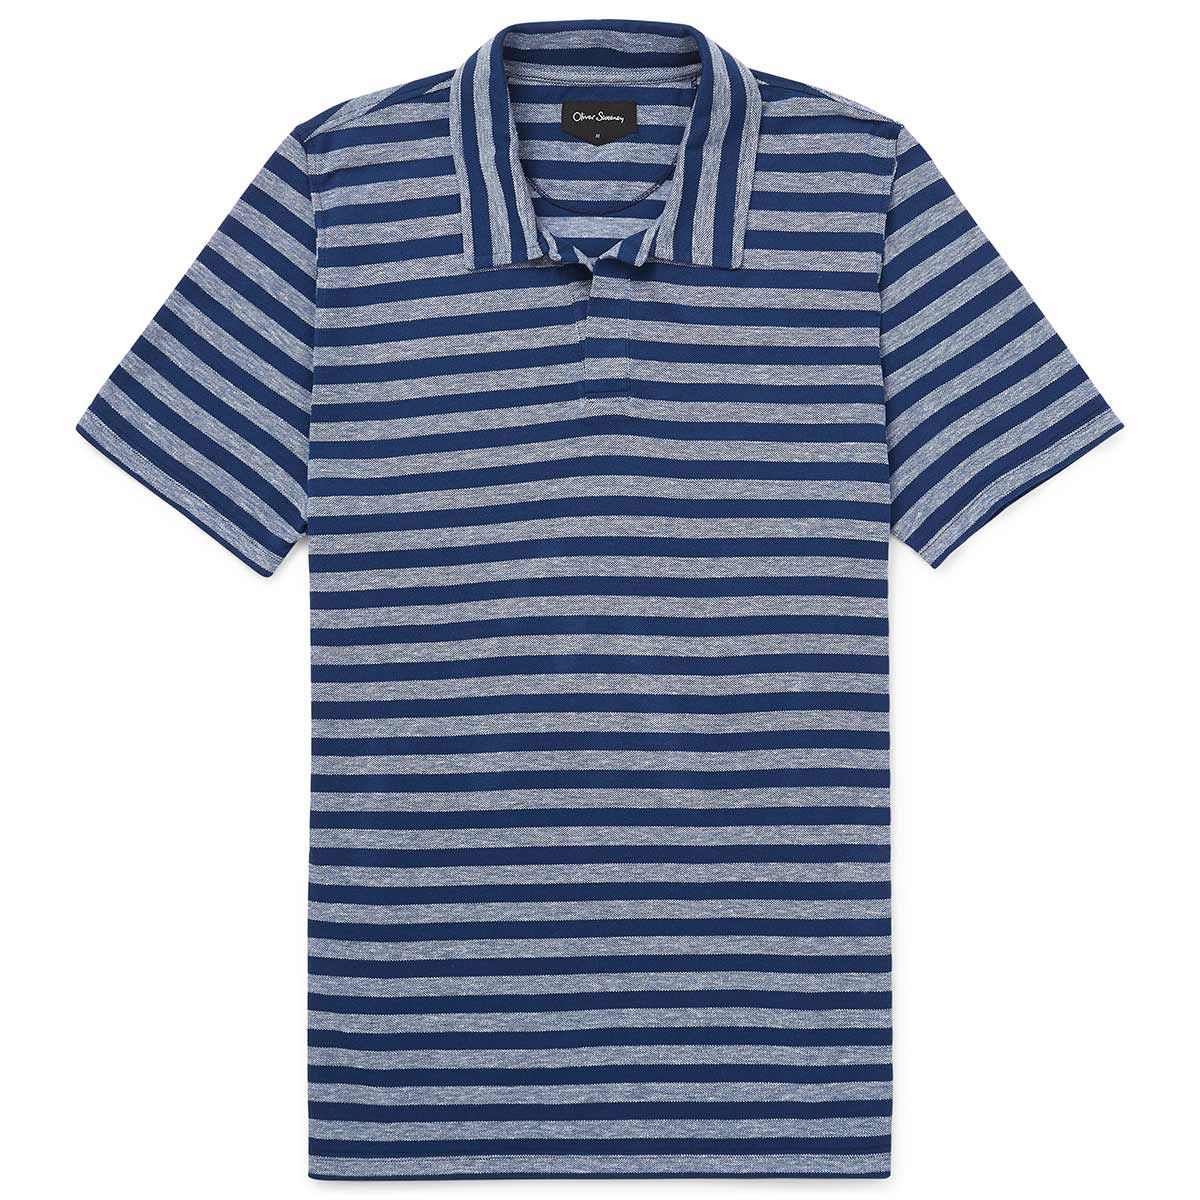 Oliver Sweeney Ardaos Blue - Cotton/Linen Striped Pique Polo